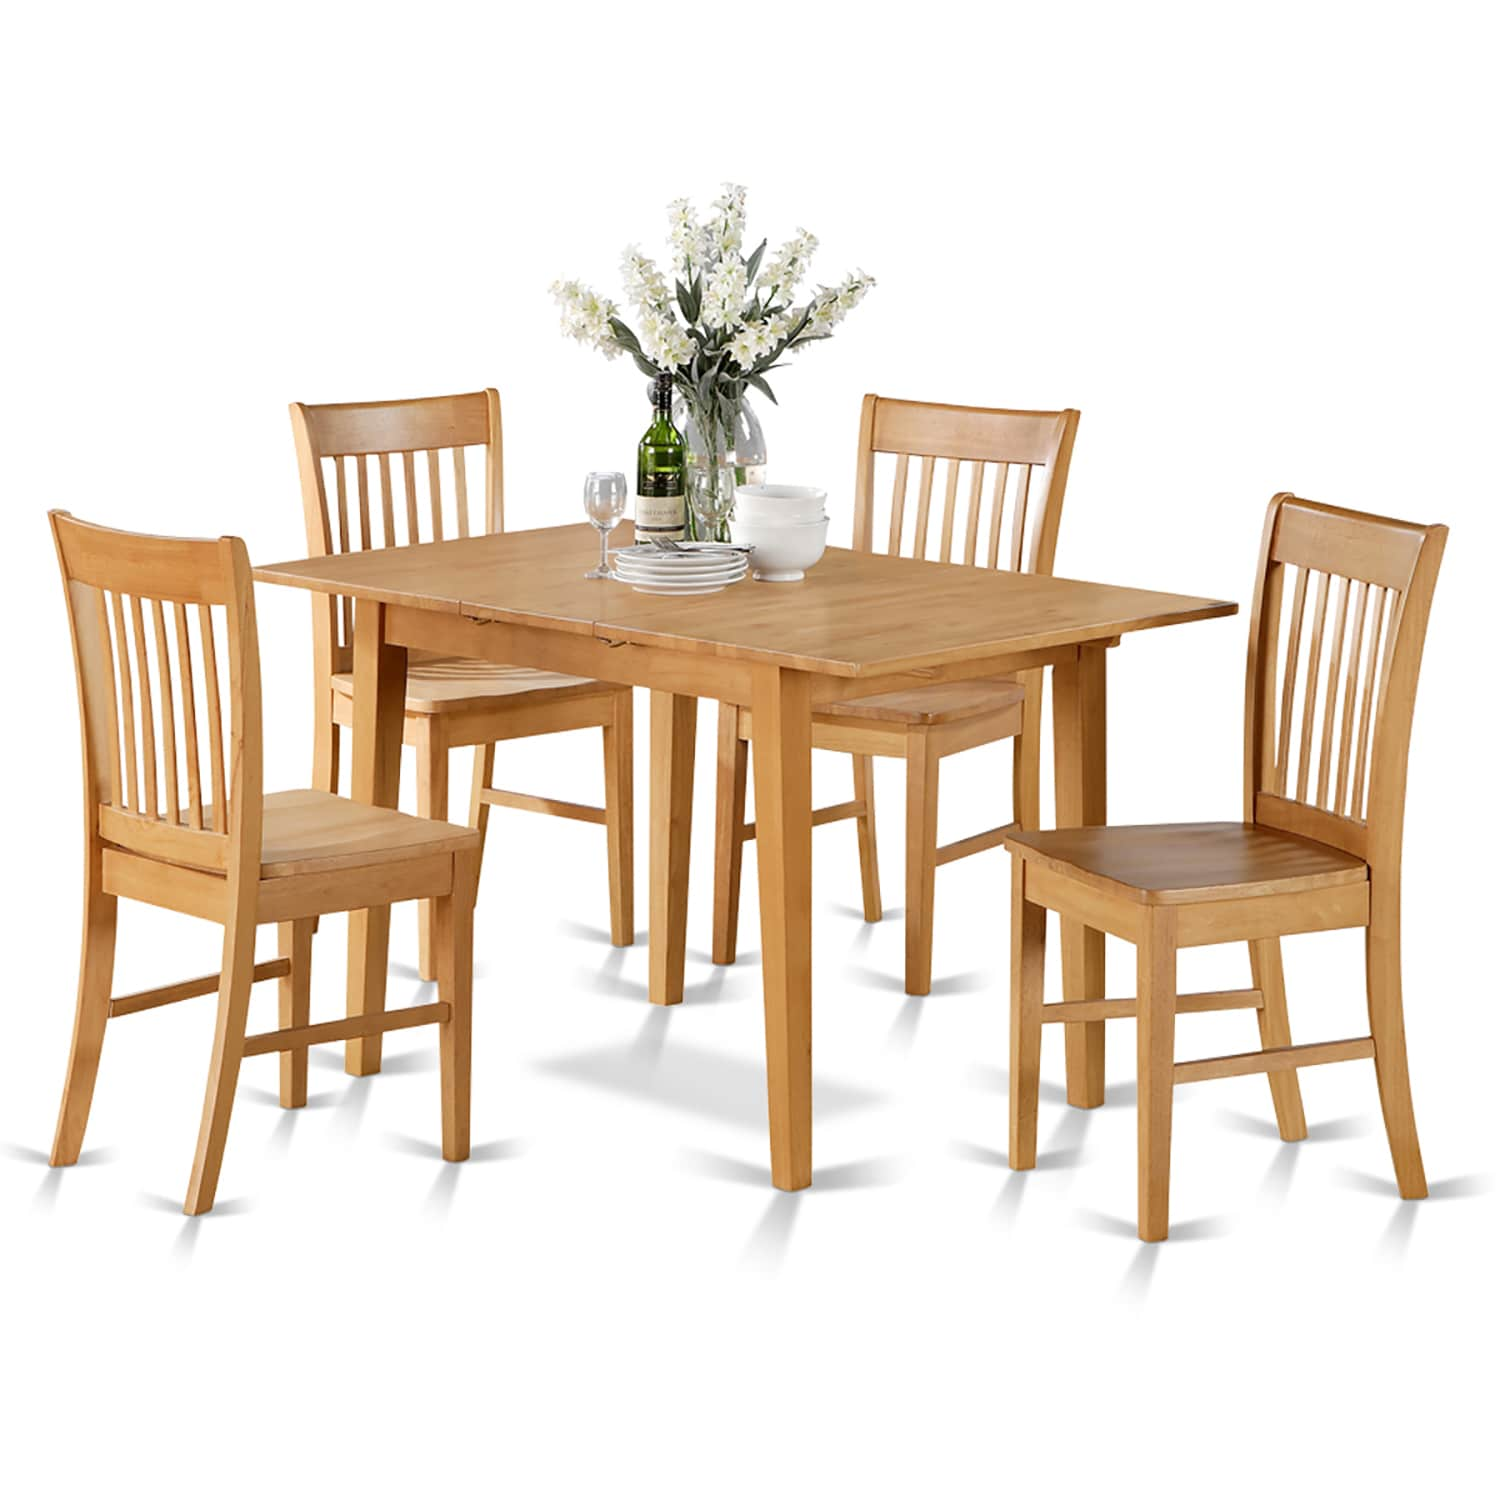 East West Furniture NOFK7-OAK-W 7 Piece Dinette Set For Small Spaces- Dining Tables and 6 Dining Table Chairs